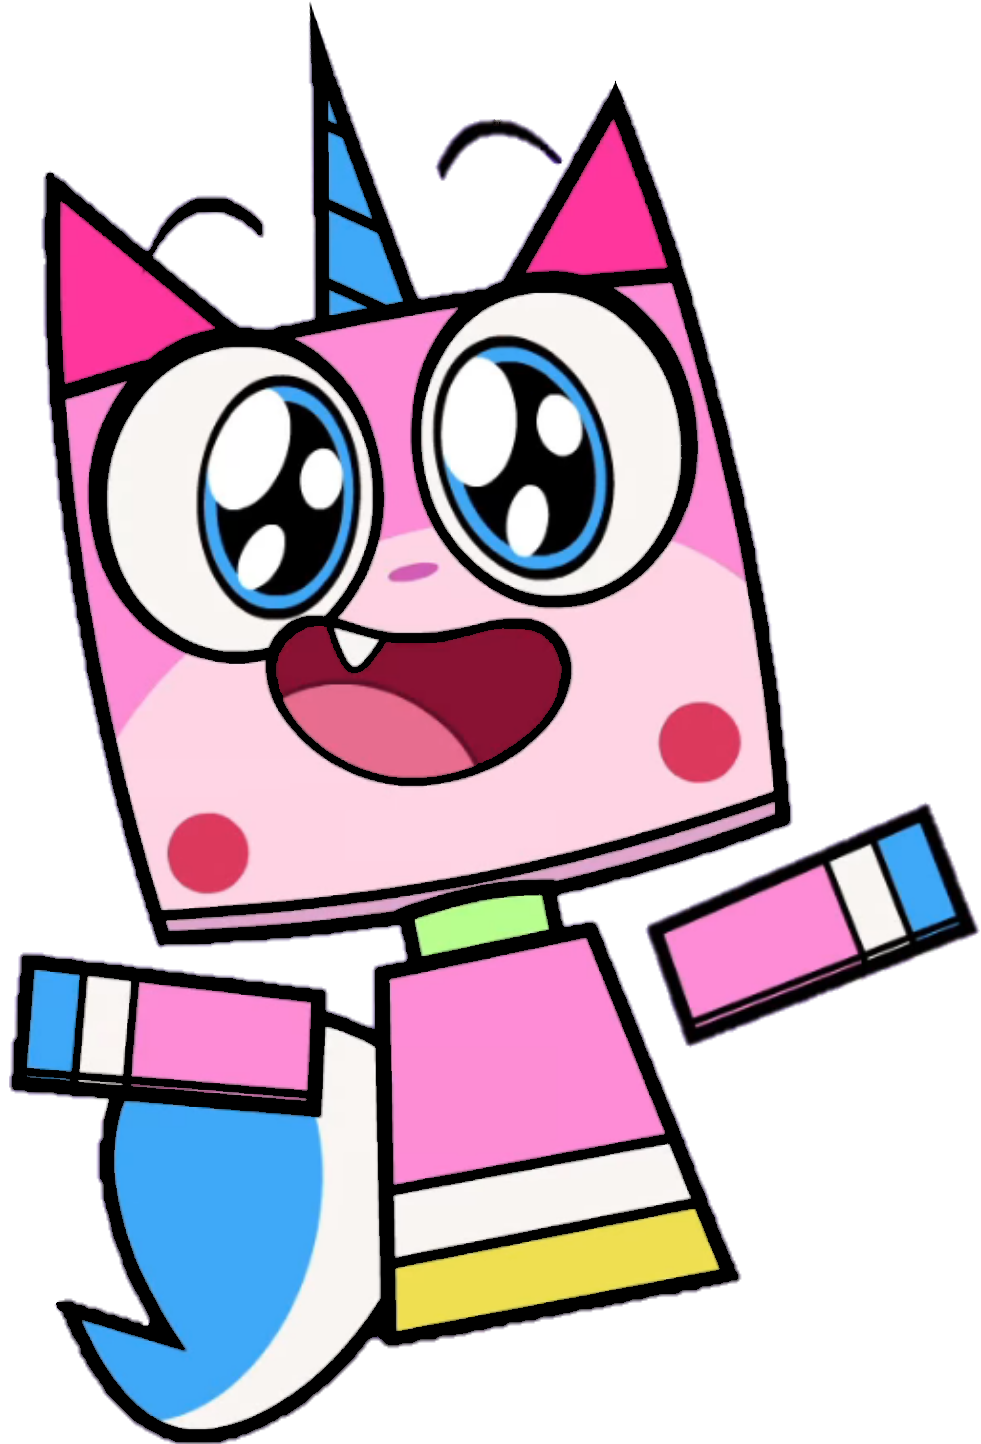 Unikitty Full Episodes Gifs Search | Search & Share on Homdor |Unikitty Face